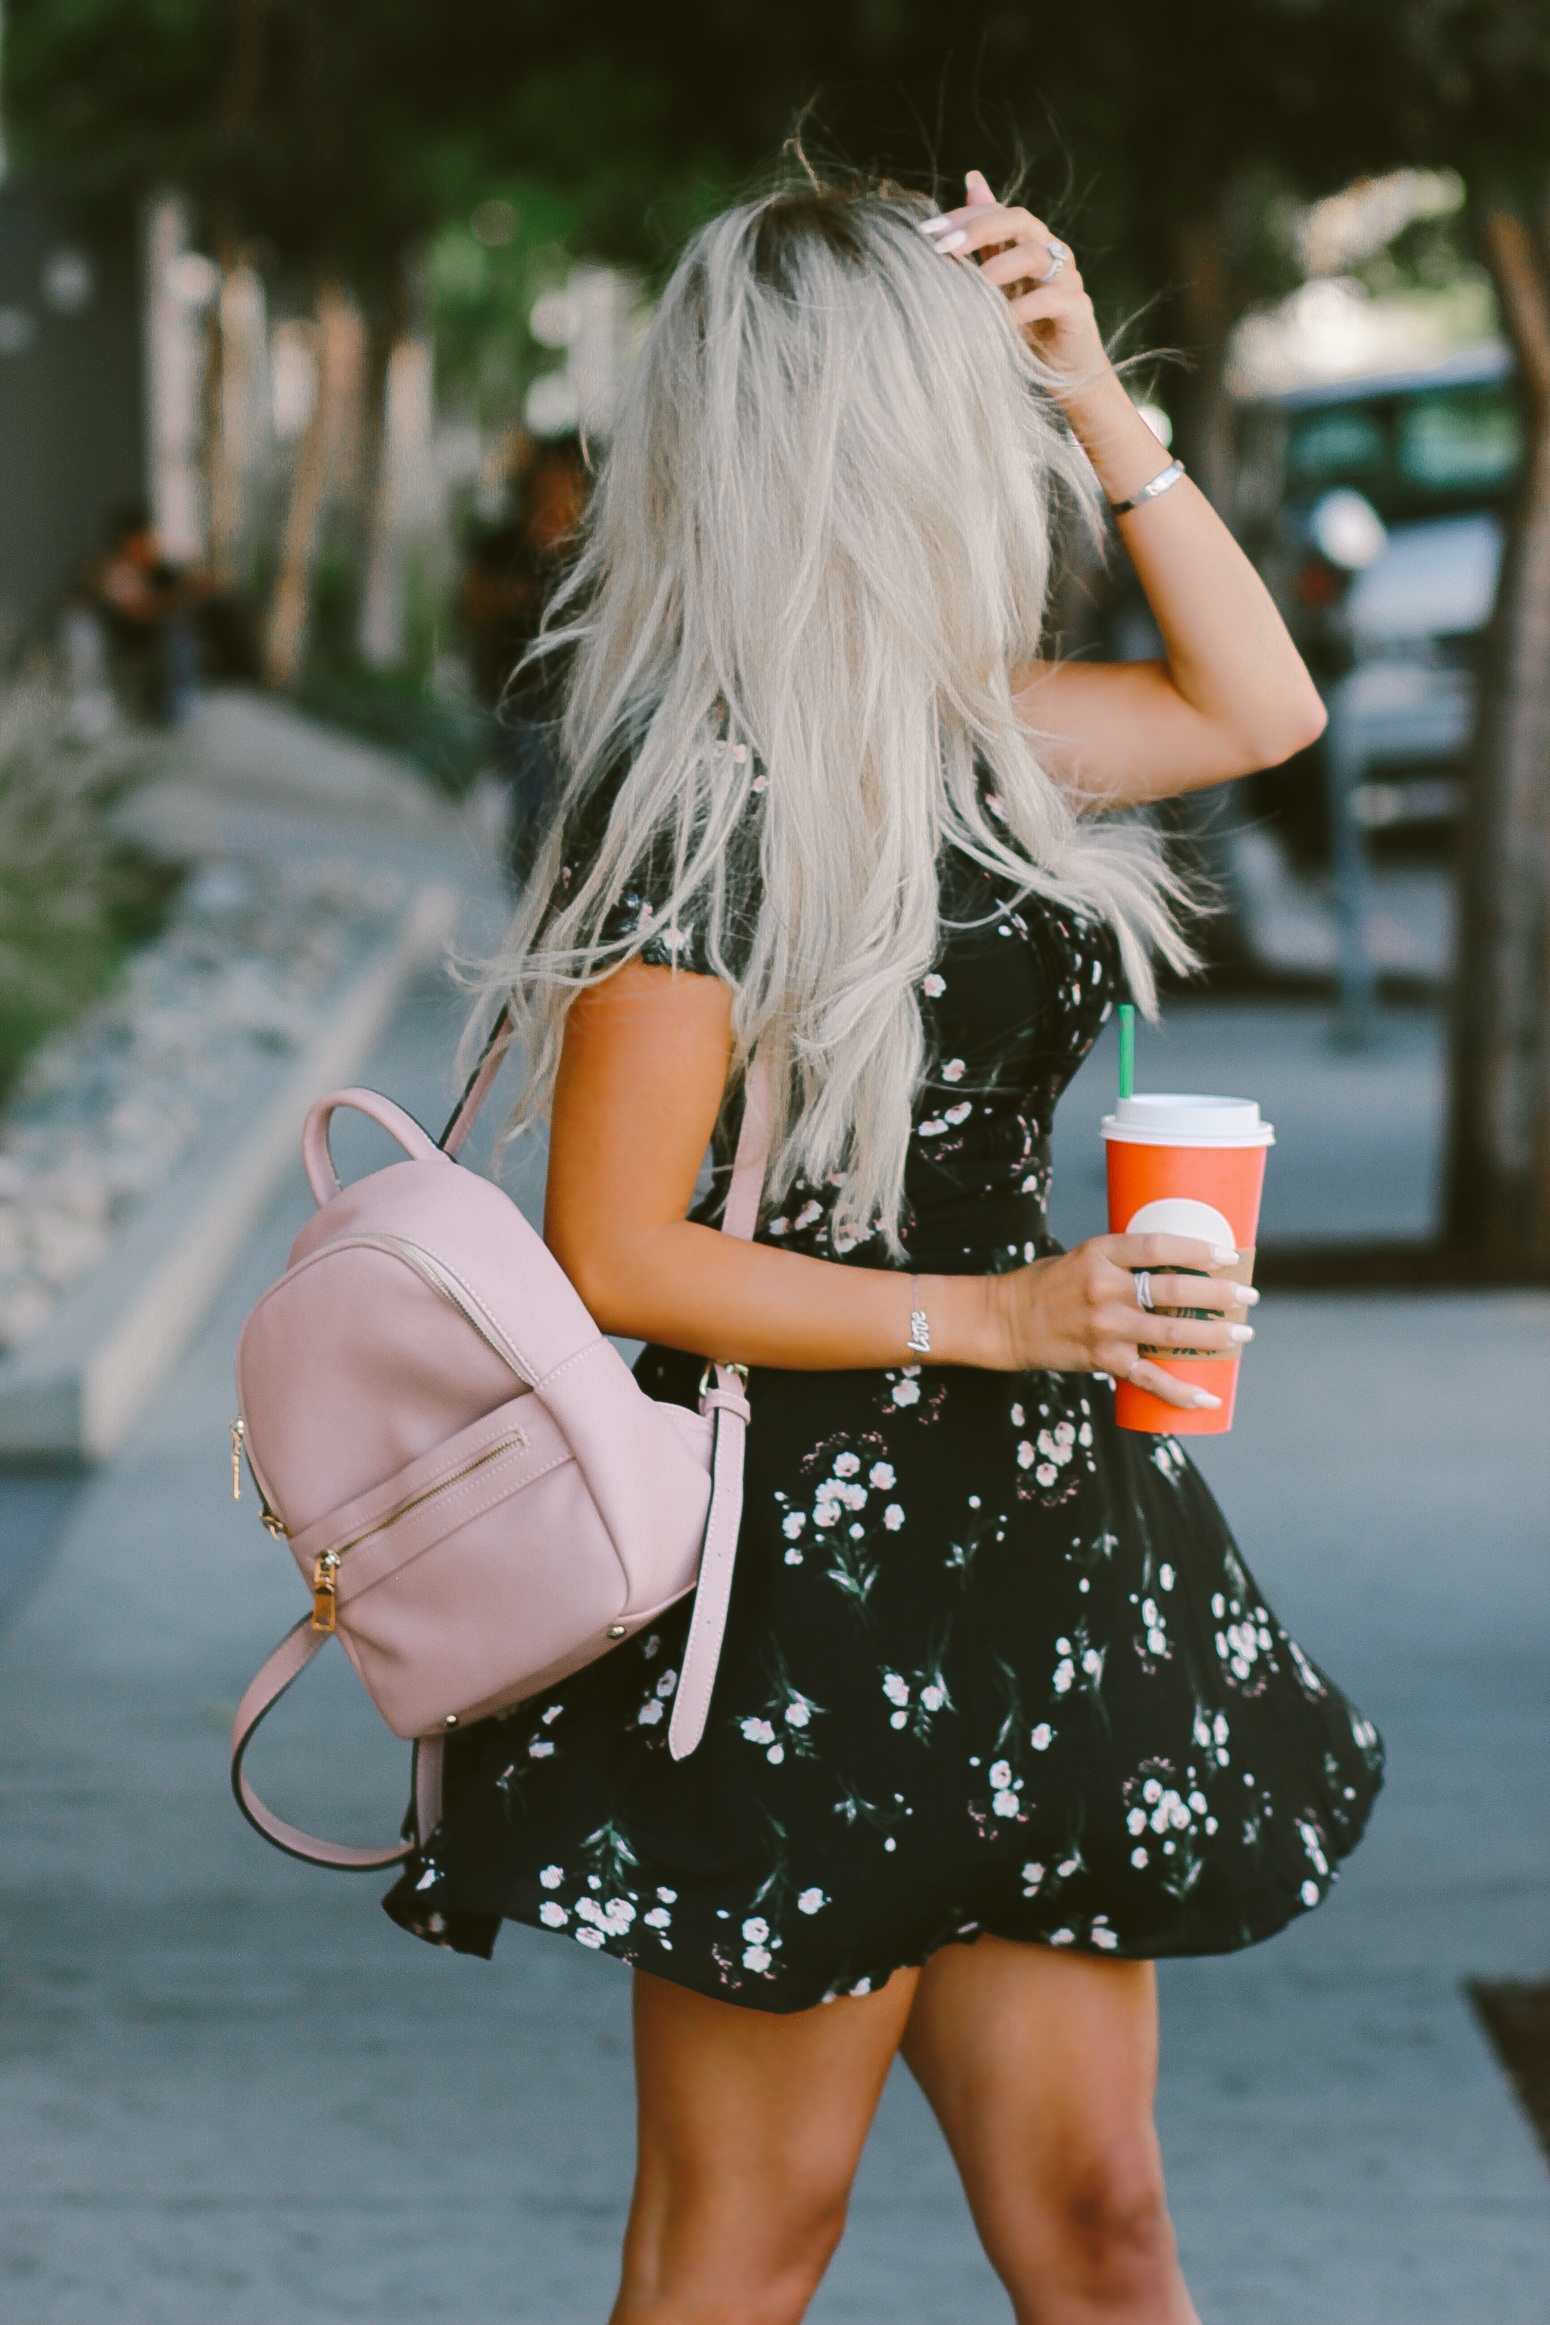 Blondie in the City | Cute Floral Fall Dress w/ Ankle Lace Heels